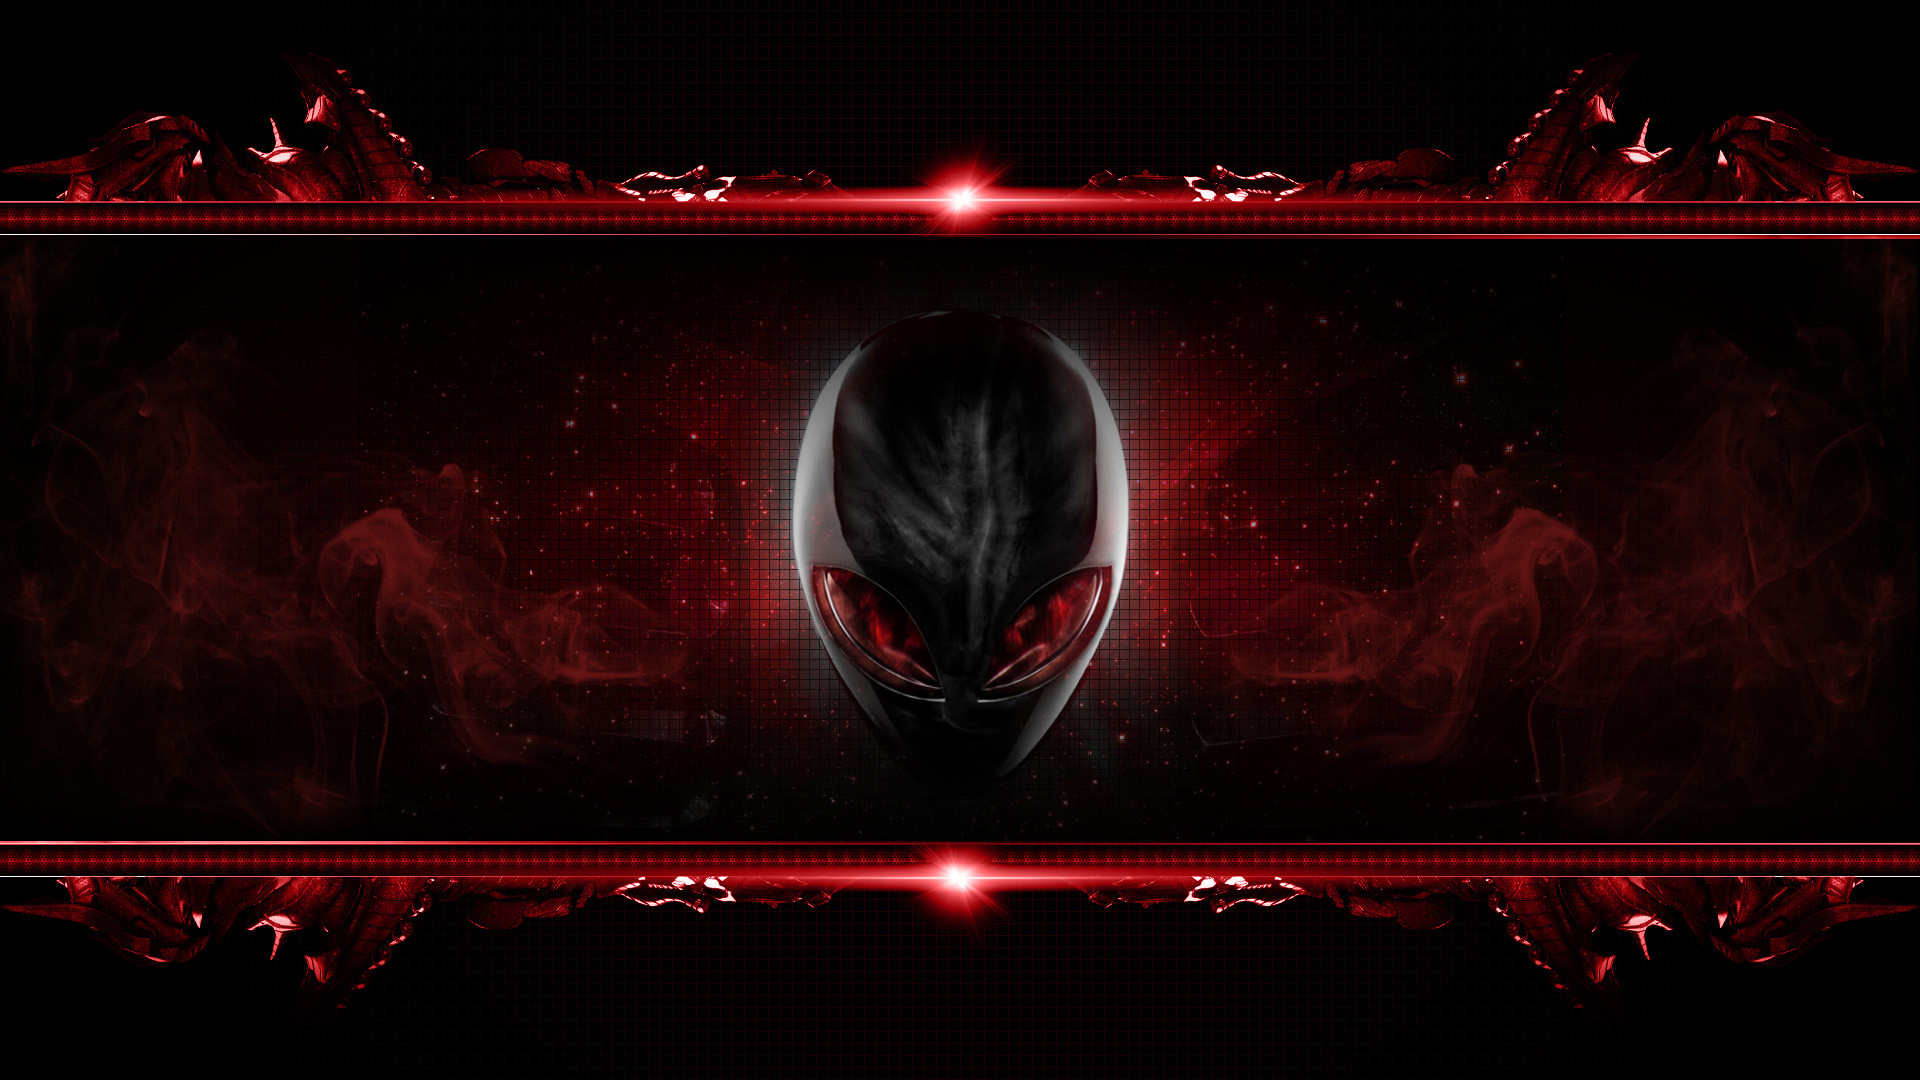 1920x1080 Alienware Windows 10 - Image ID: 556185004